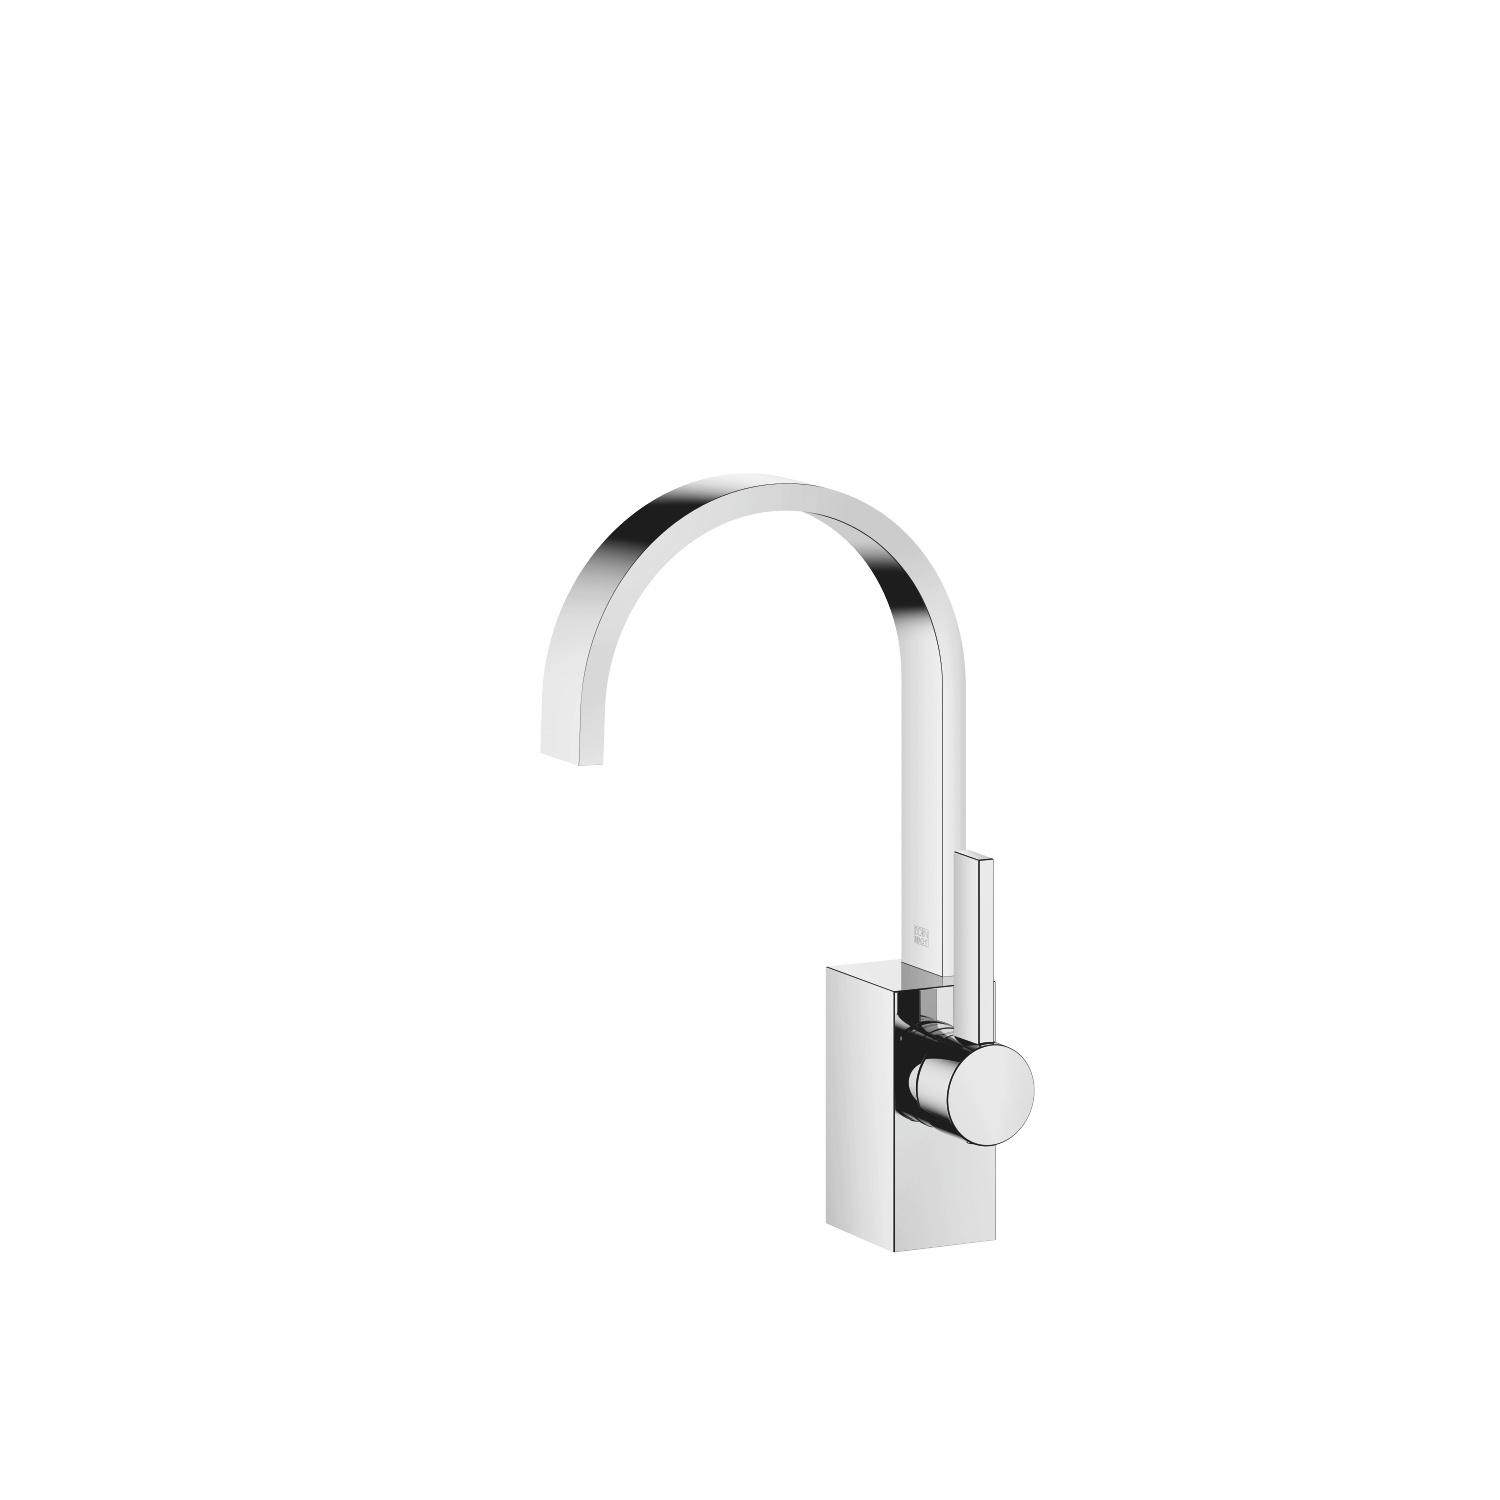 Single-lever basin mixer without pop-up waste - polished chrome - 33 521 782-00